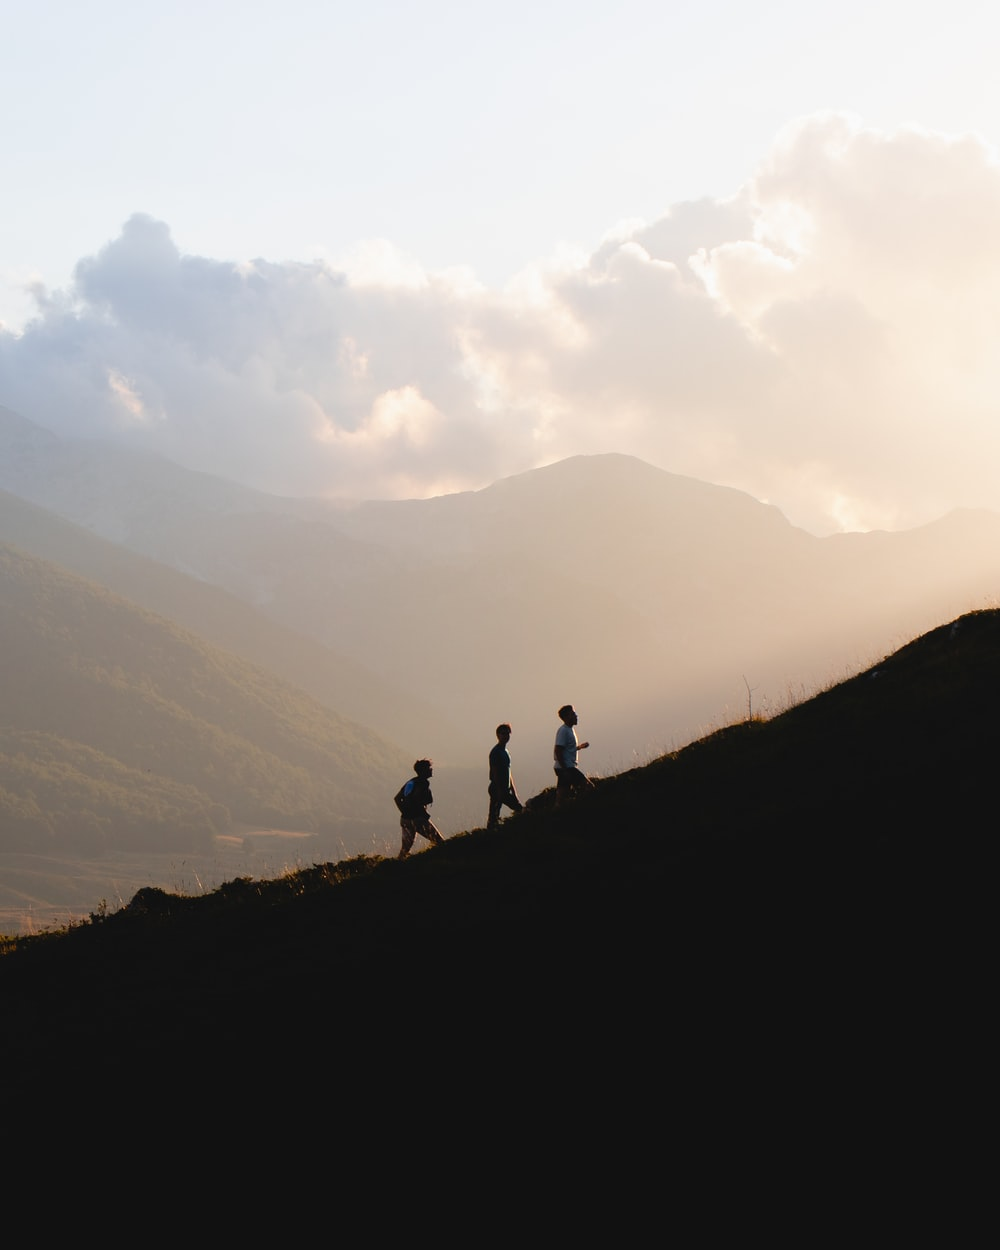 silhouette of 2 people standing on top of mountain during daytime